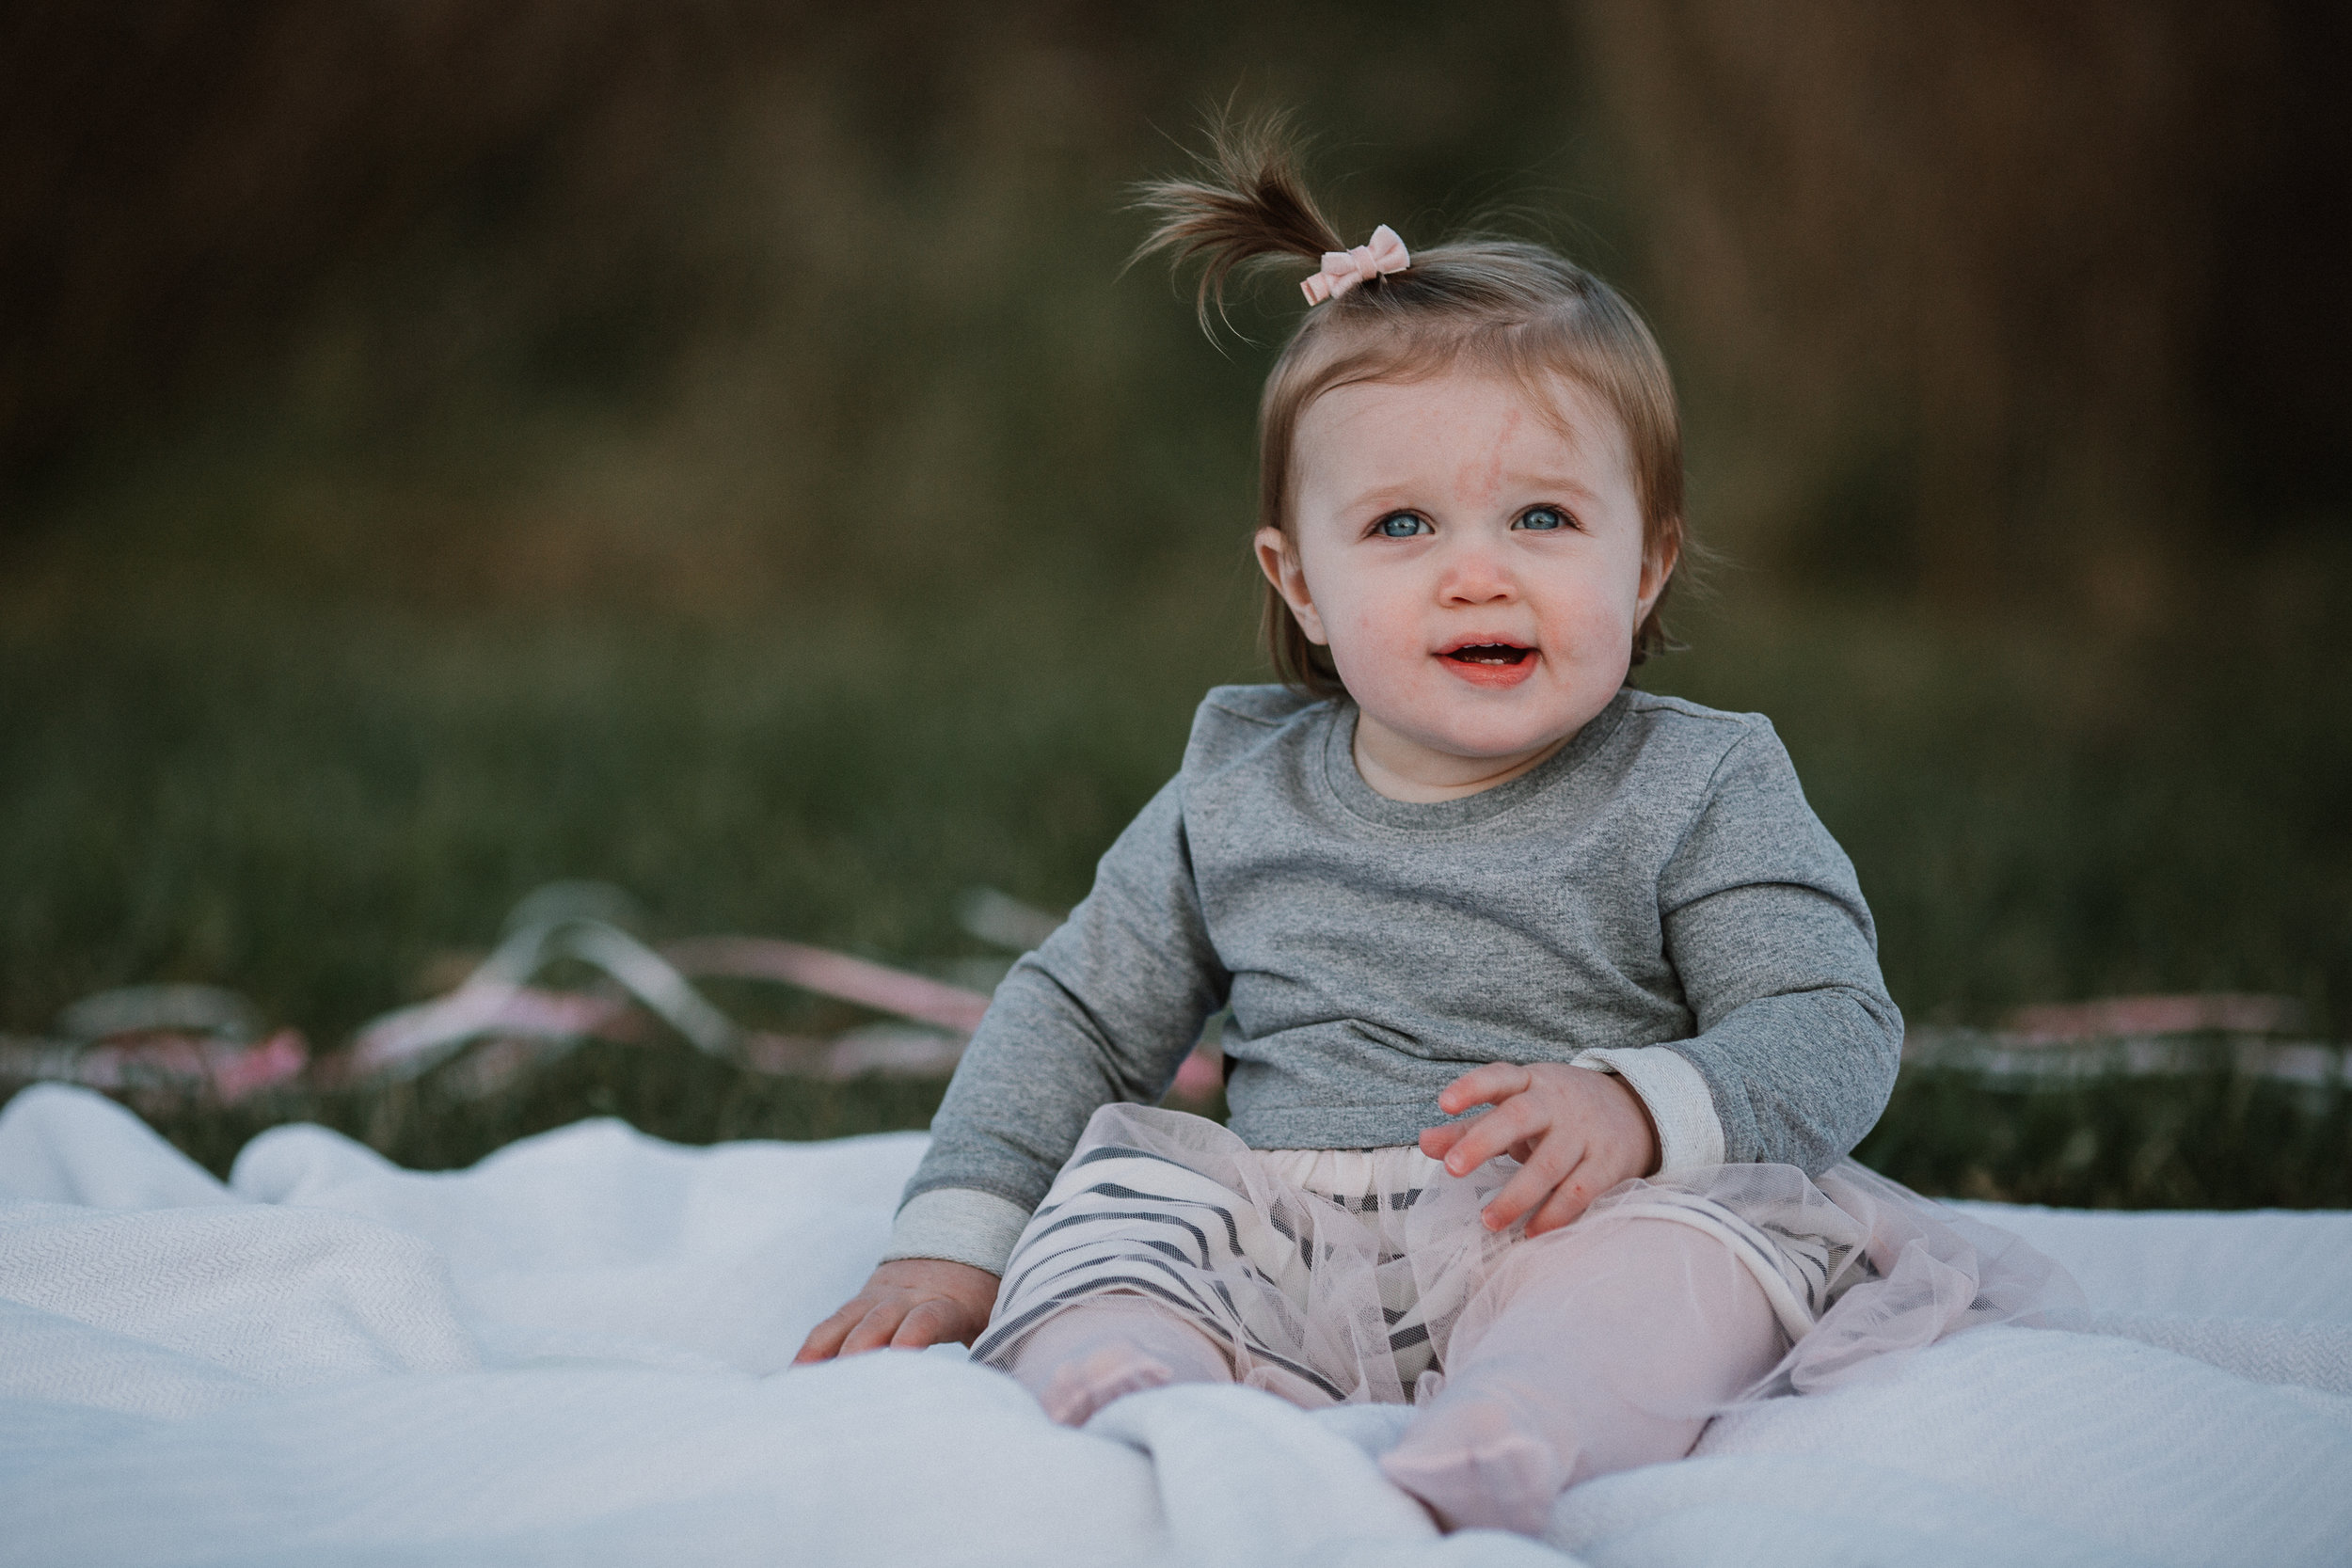 one year old toddler girl portrait Lifestyle Documentary Fall Autumn Sunset Golden Hour Family toddler first birthday cake smash Beaverdam Run Broadlands Loudoun Virginia Marti Austin Photography